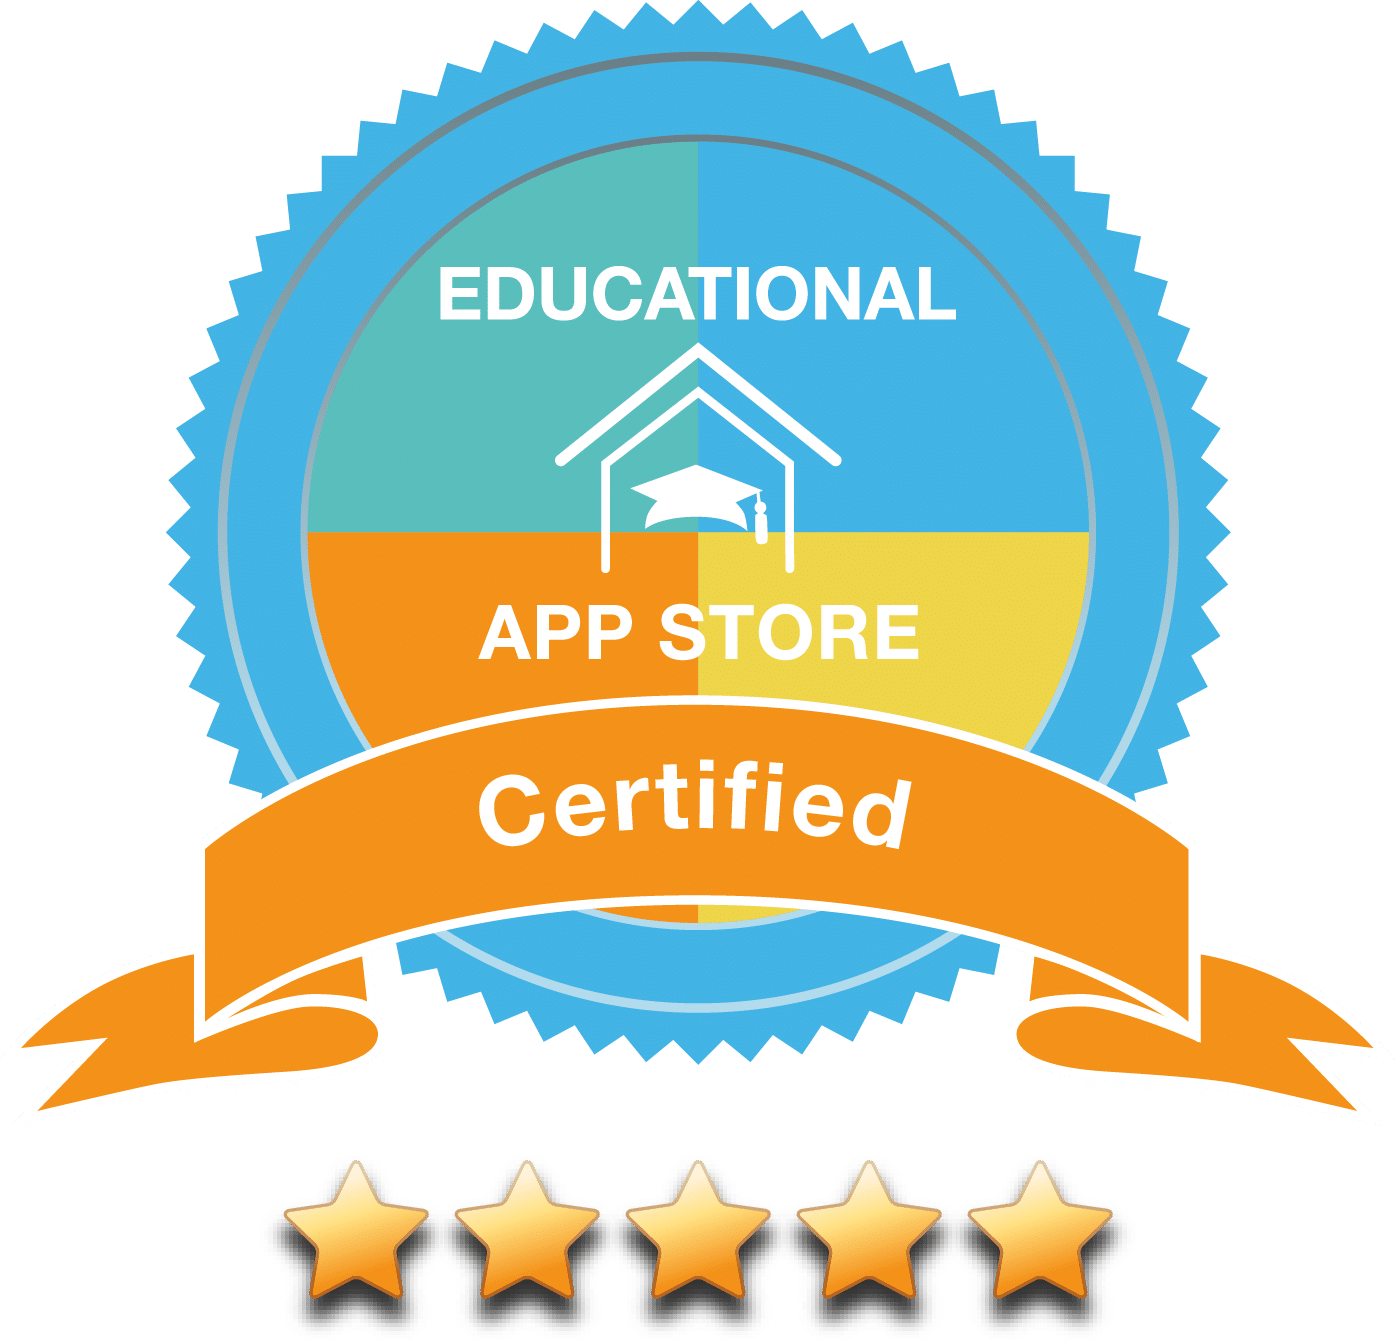 certified-coco-best-educational-apps-training-for-children-toddler-6-and-up-top-learning-apps-for-autistic-children-autism-mobile-games-on-tablet-playstore-appstore-ios-ipad